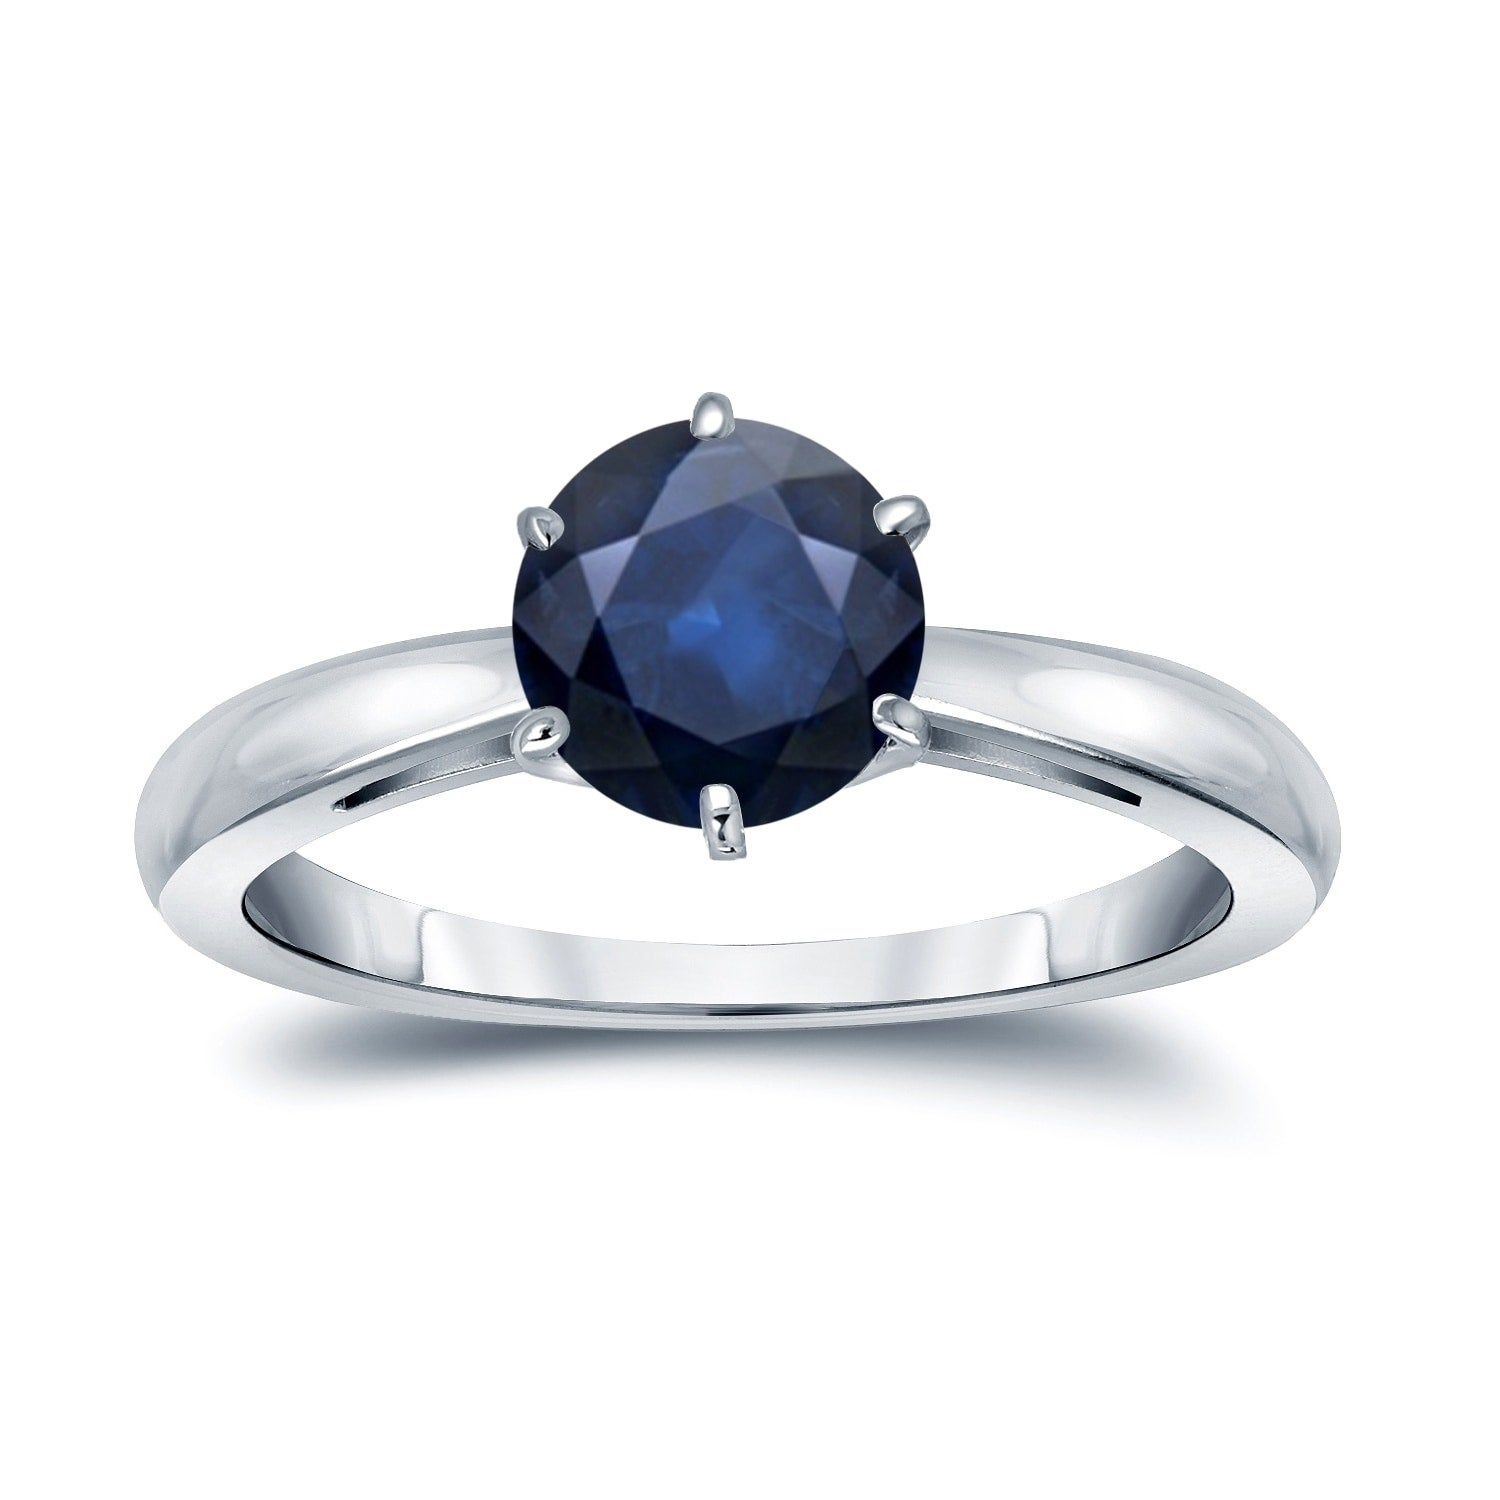 jqb sapphire insured solitaire uk buy ring gold online free m